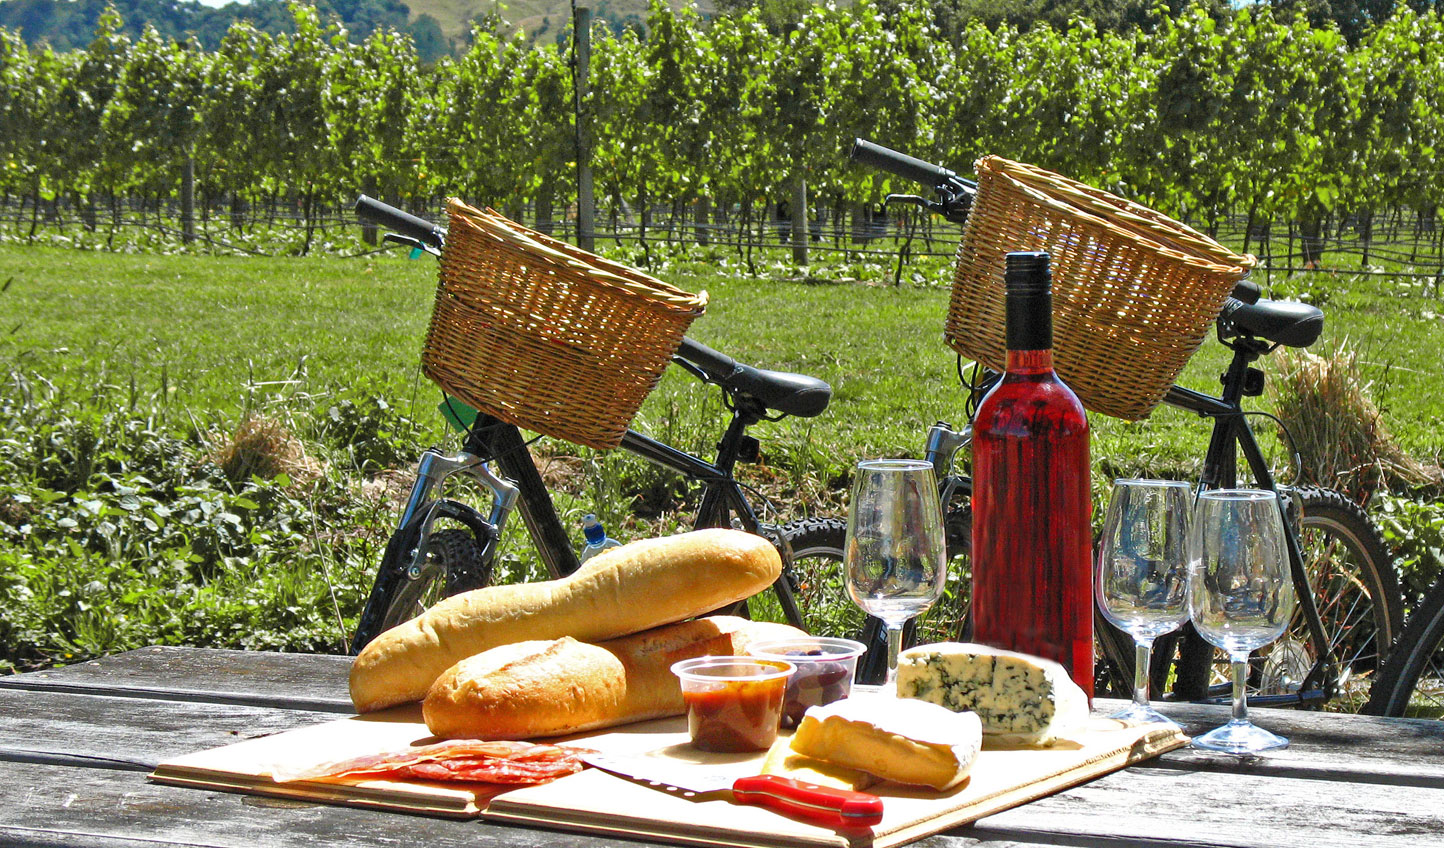 Gourmet picnics and wine tasting on two wheels in Hawkes Bay